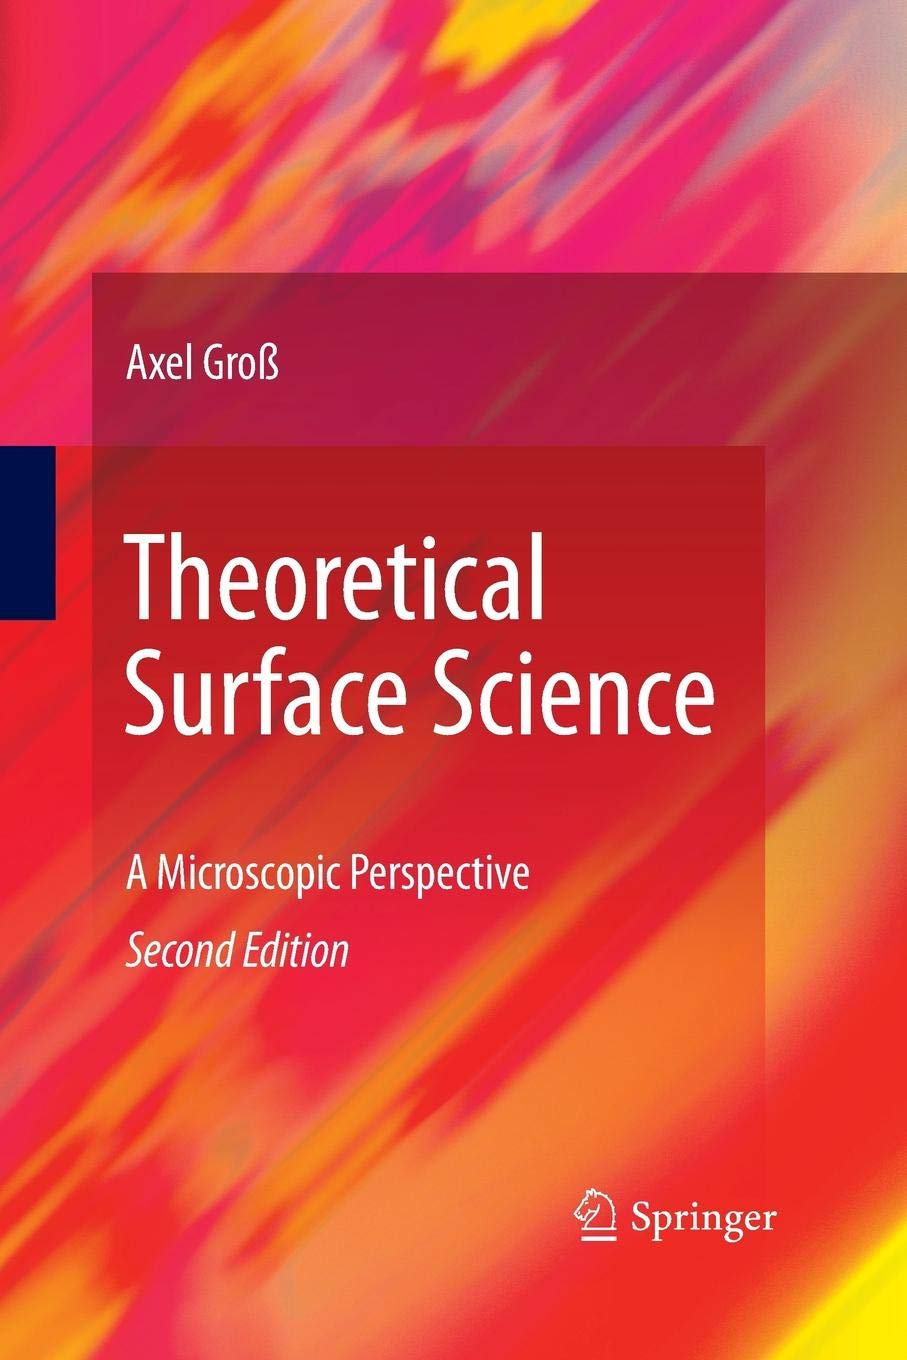 Theoretical Surface Science: A Microscopic Perspective